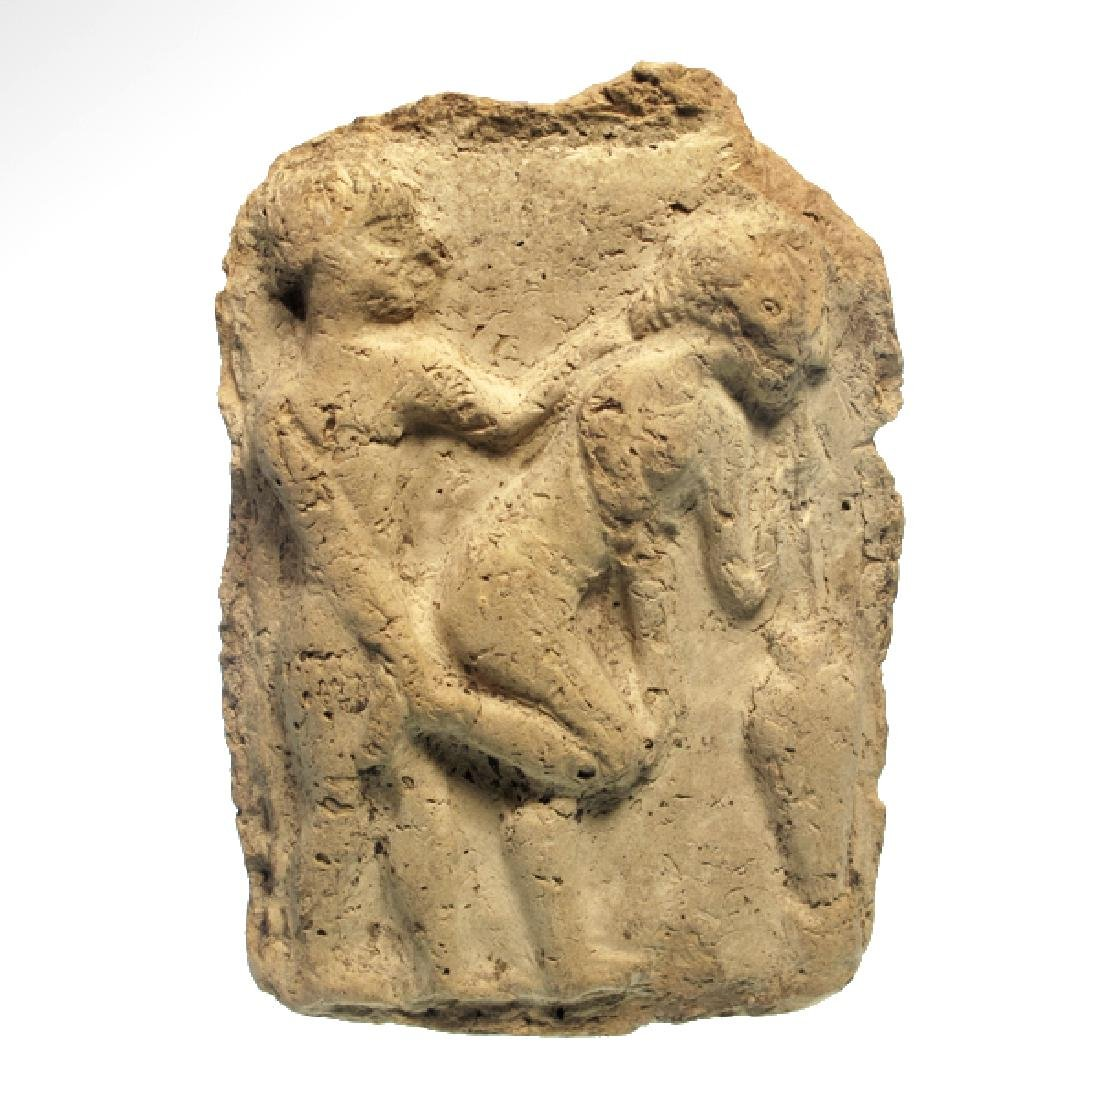 Babylonian Erotic Plaque, c. 1800 B.C.